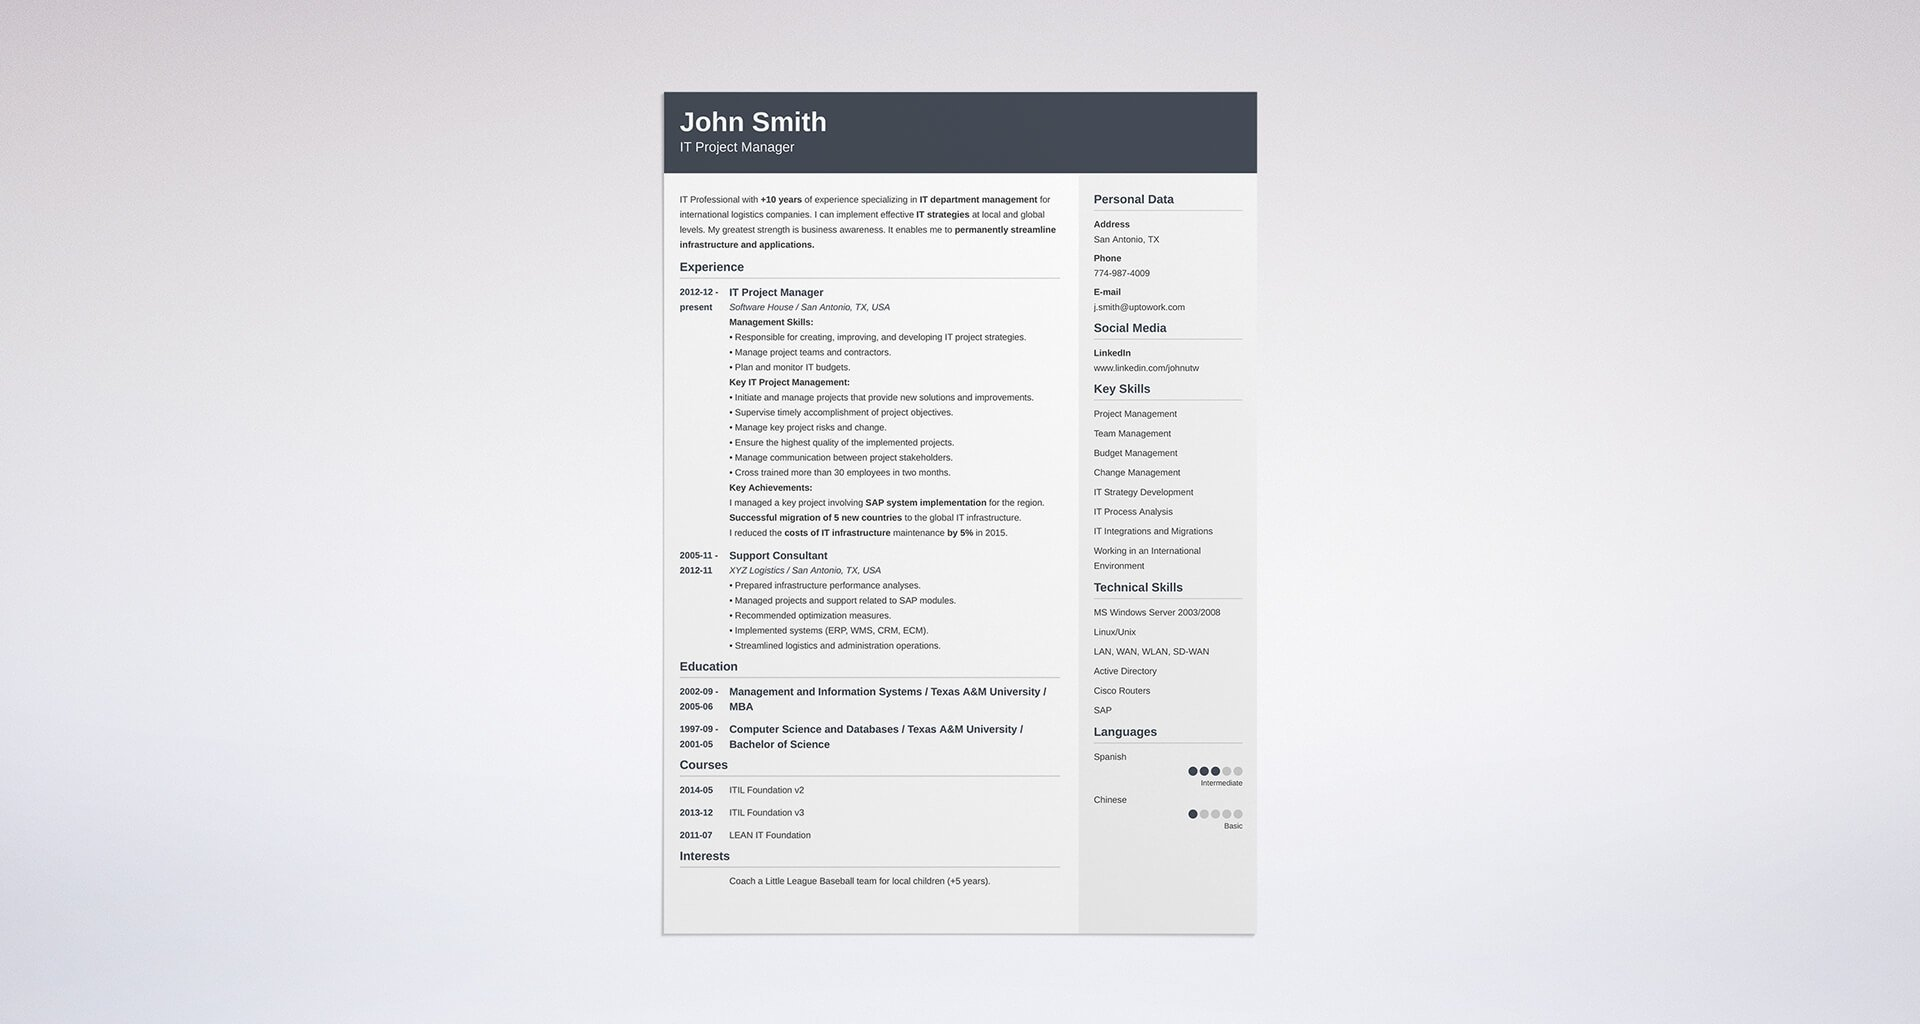 best resume format professional samples layout homeschool mom catchy objective statements Resume Best Resume Layout 2020